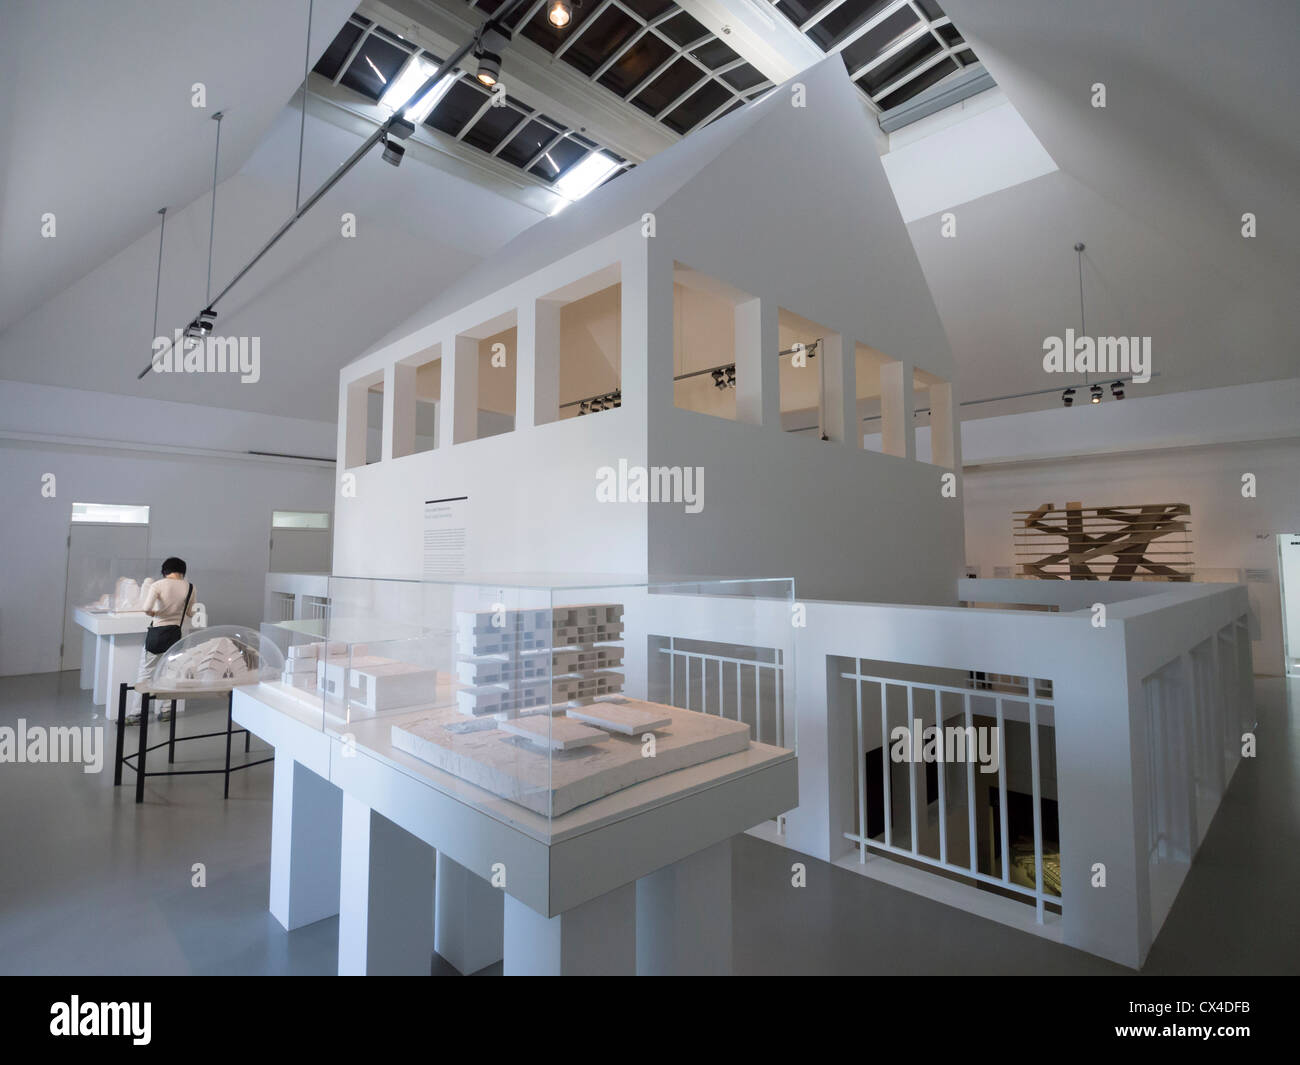 Interior of Germany Architecture Museum in Frankfurt Germany - Stock Image